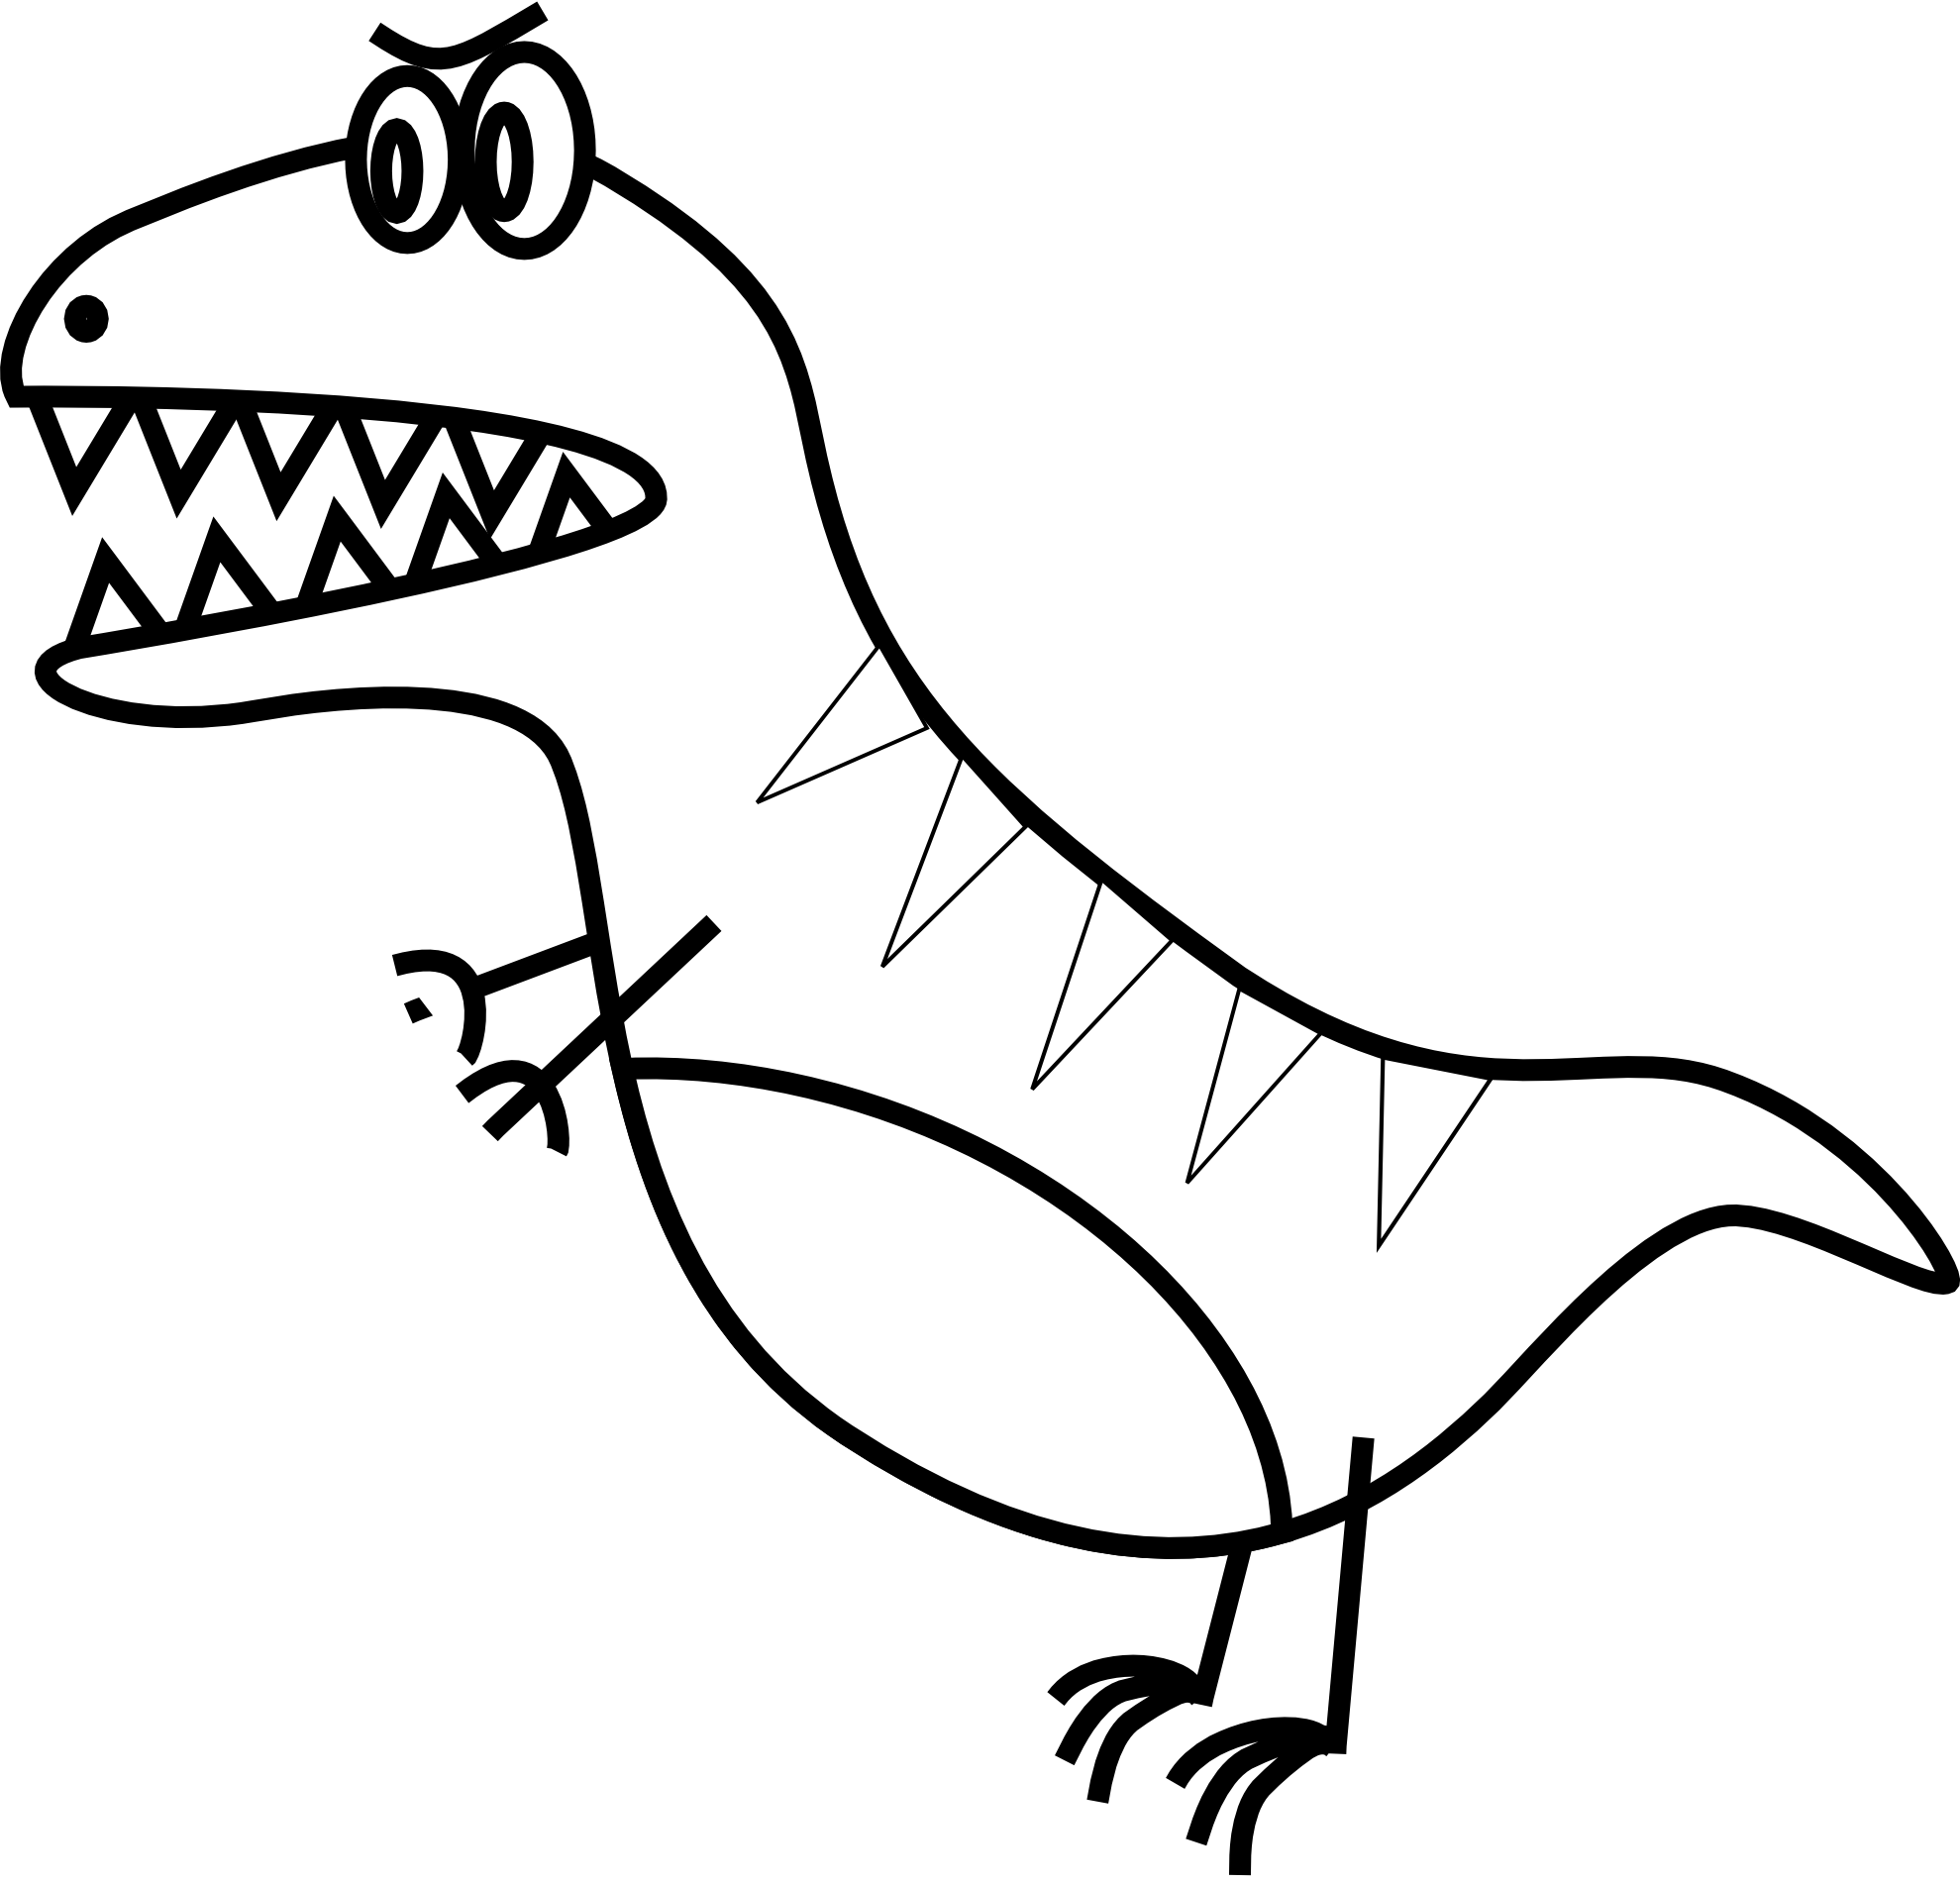 Simple Line Artwork : Simple line drawings of animals clipart best